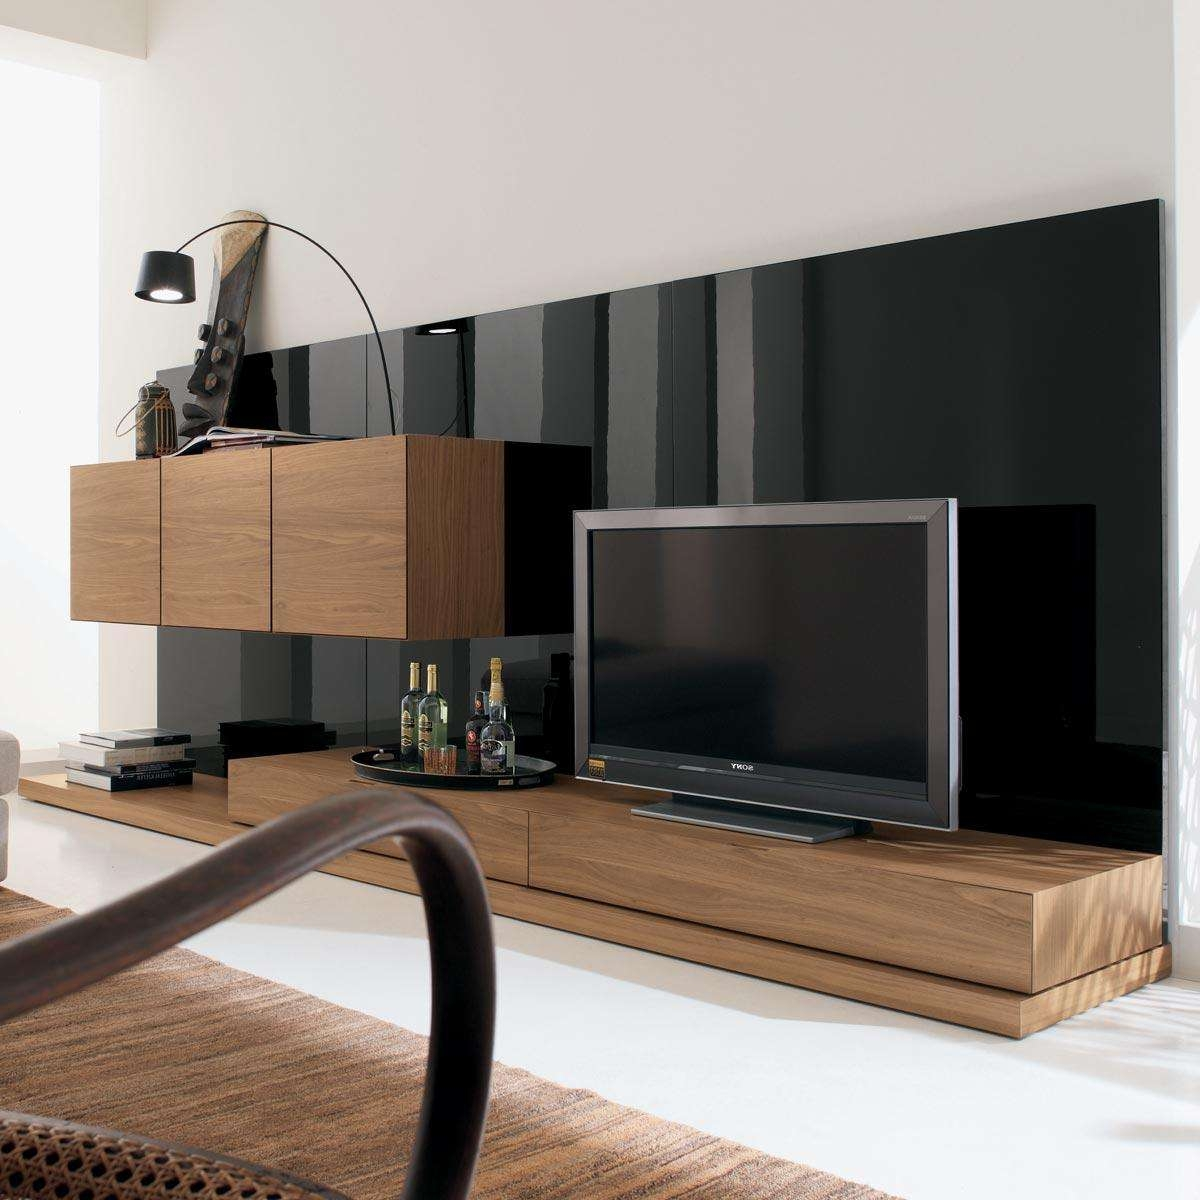 Modern Nature Wood Big Screen Tv Stand Wall Mounted Living Room Pertaining To Big Tv Stands Furniture (View 14 of 15)